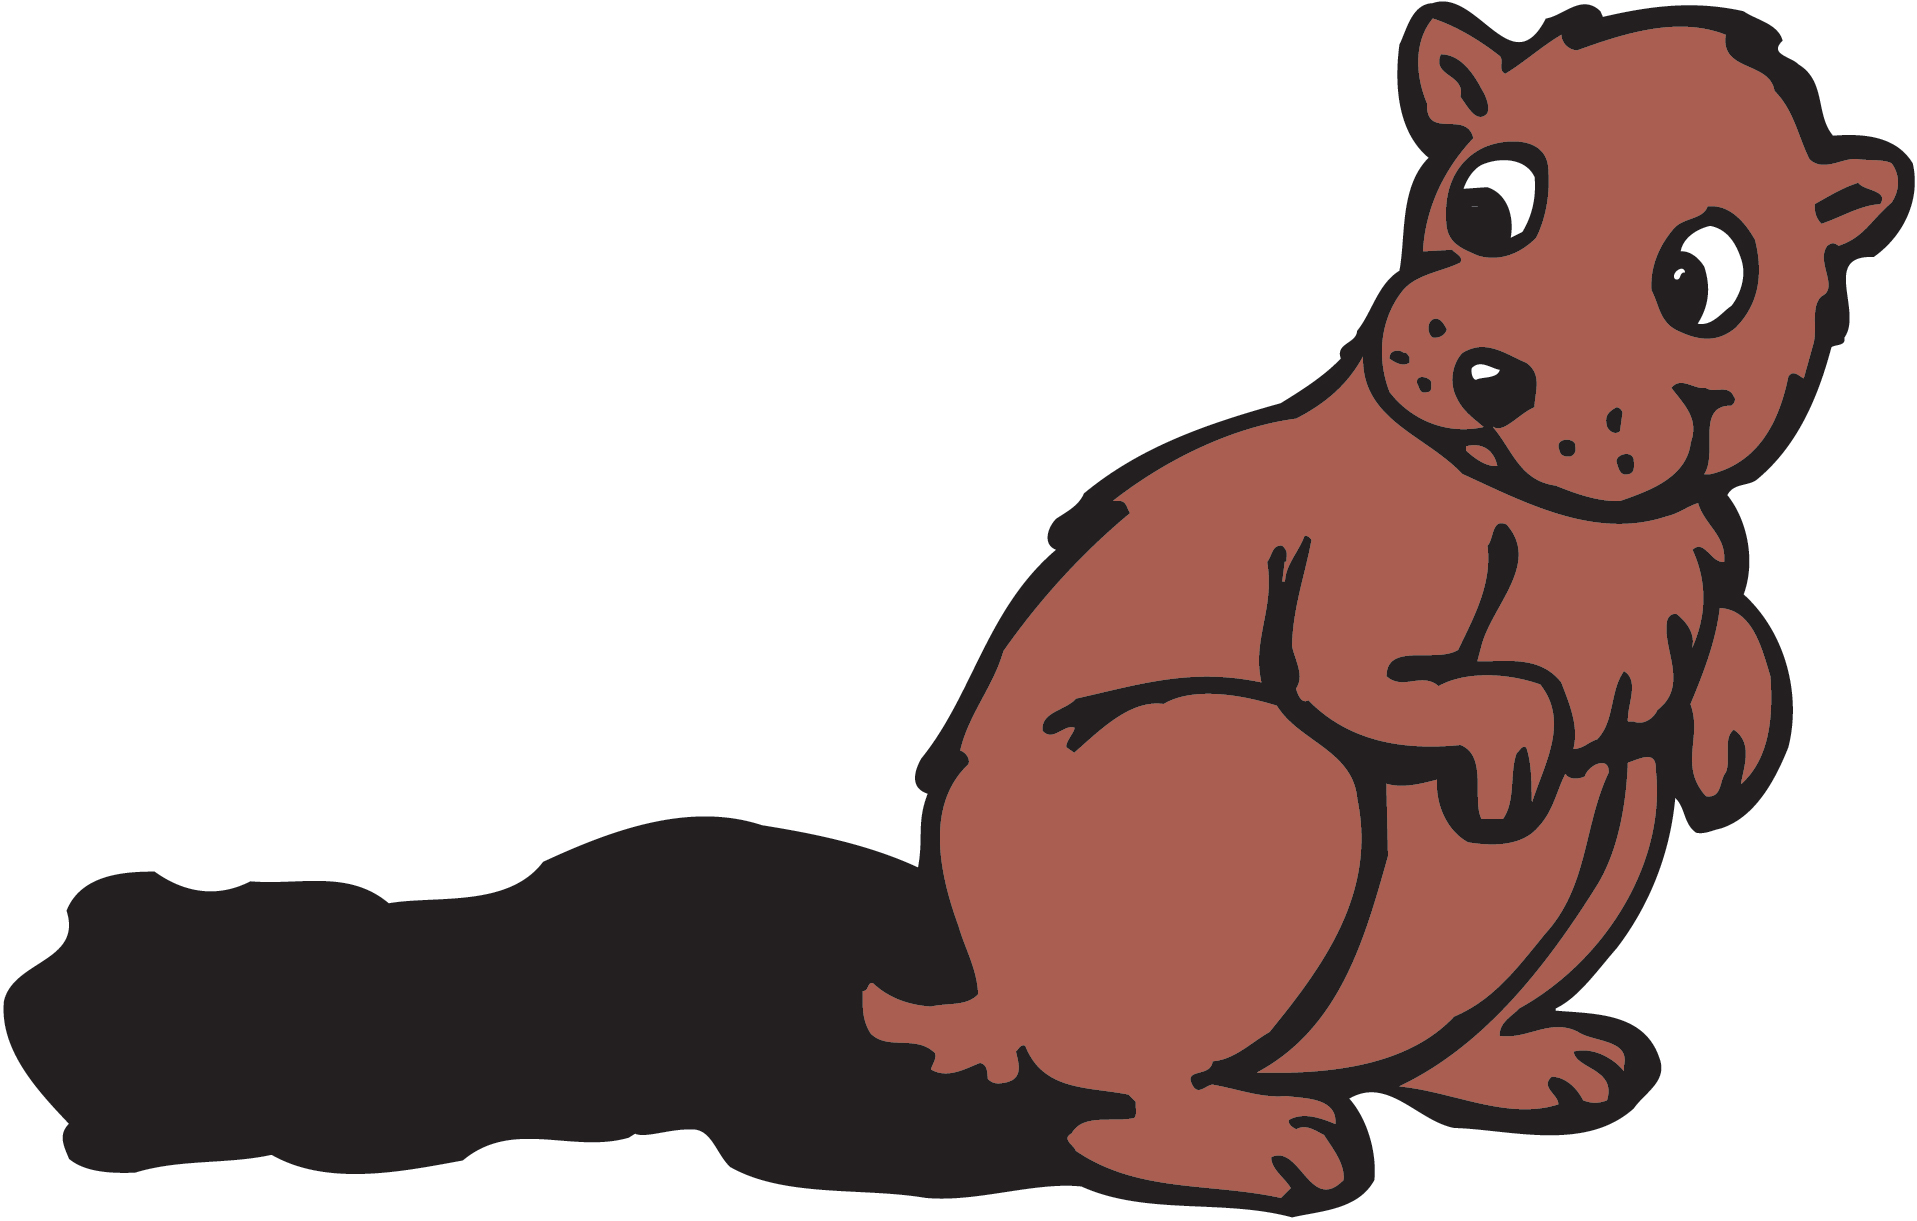 Shadows clipart sees Image groundhog ipledgeafallegiance day